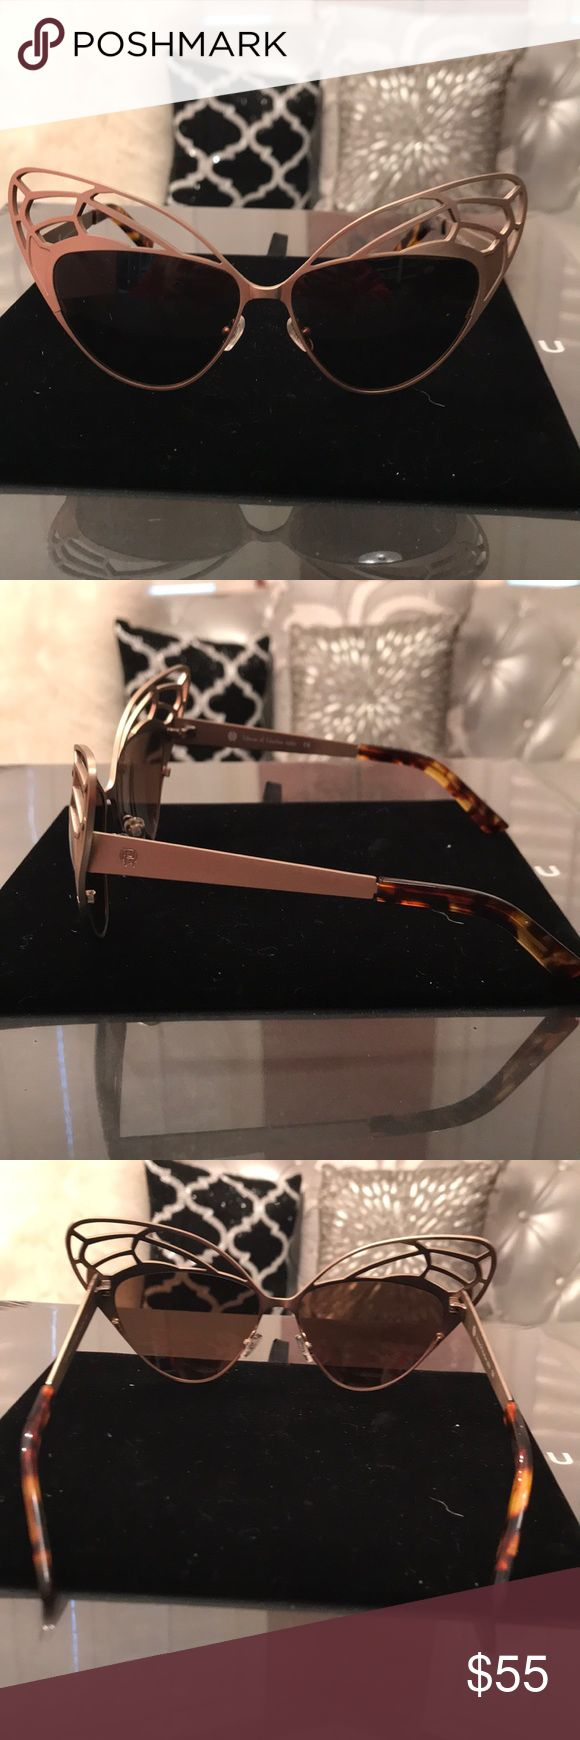 House of Harlow 1960 butterfly sunglasses Brand new. Perfect condition. House of Harlow 1960 Accessories Glasses